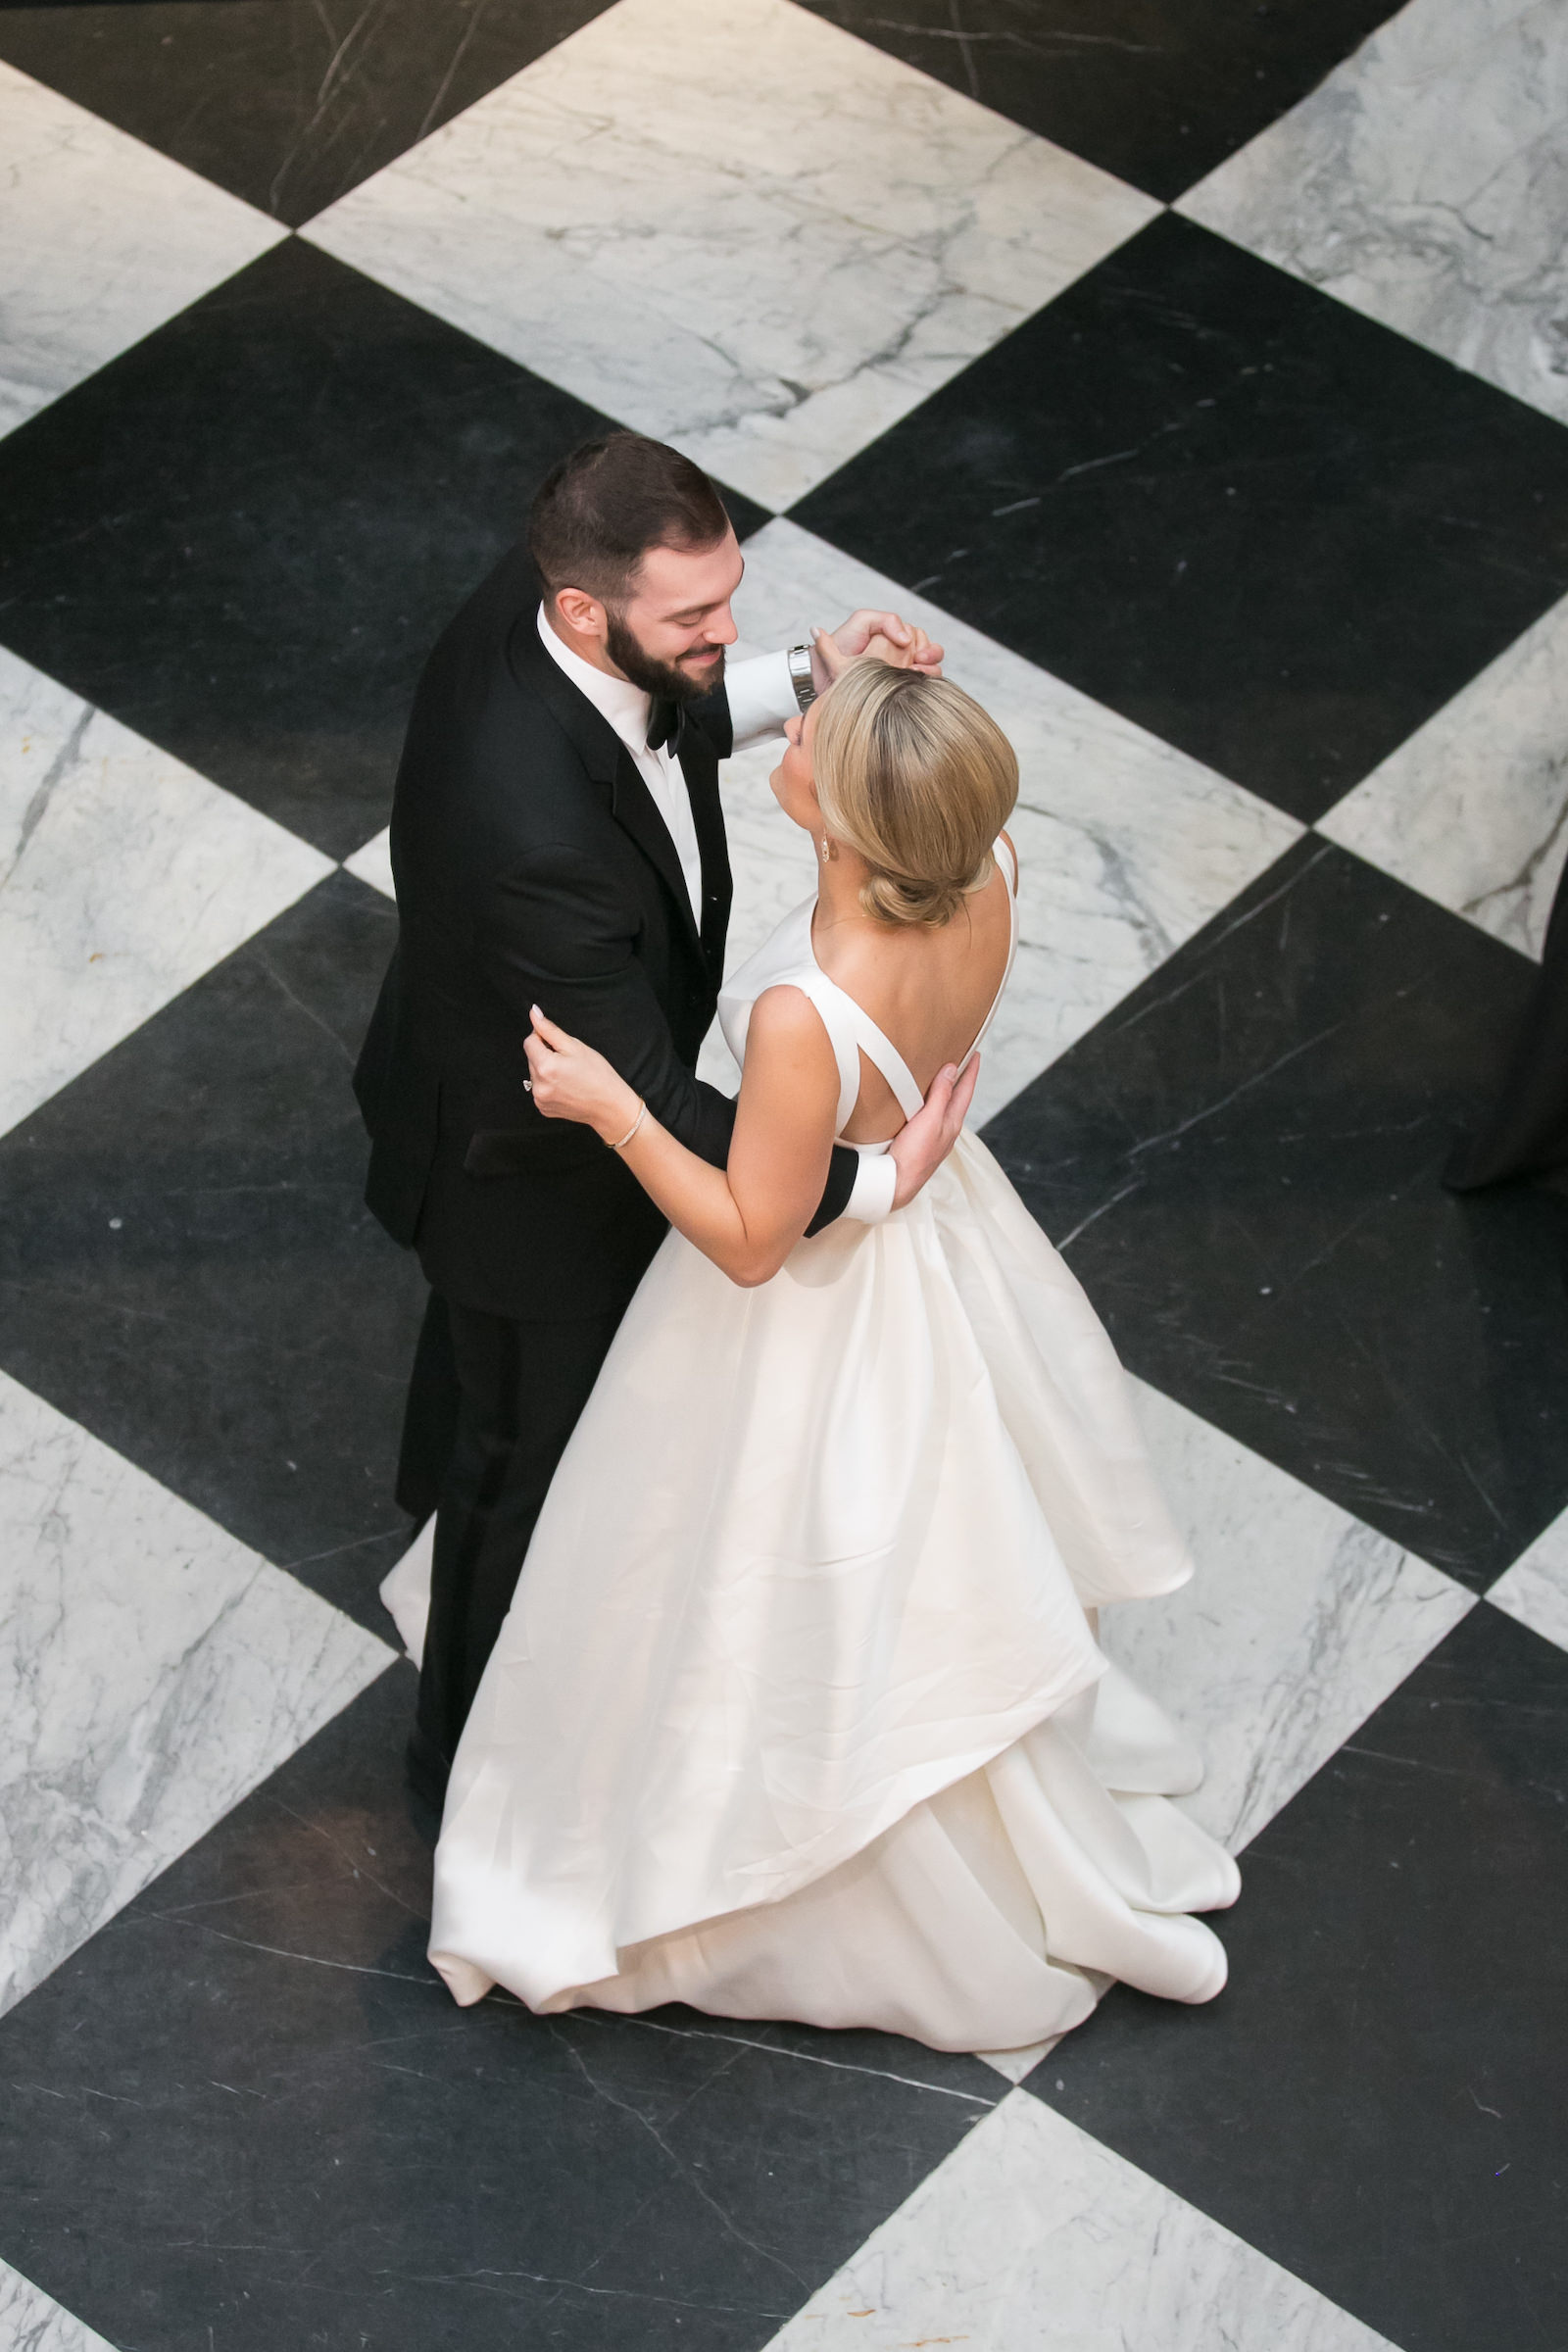 Bride and Groom First Dance at Oxford Exchange Wedding Reception in Downtown Tampa | Bateau Neck Mikado Satin Martina Liana Simple Elegant Wedding Dress with Buttons Down Back | Groom in Classic Black Tux